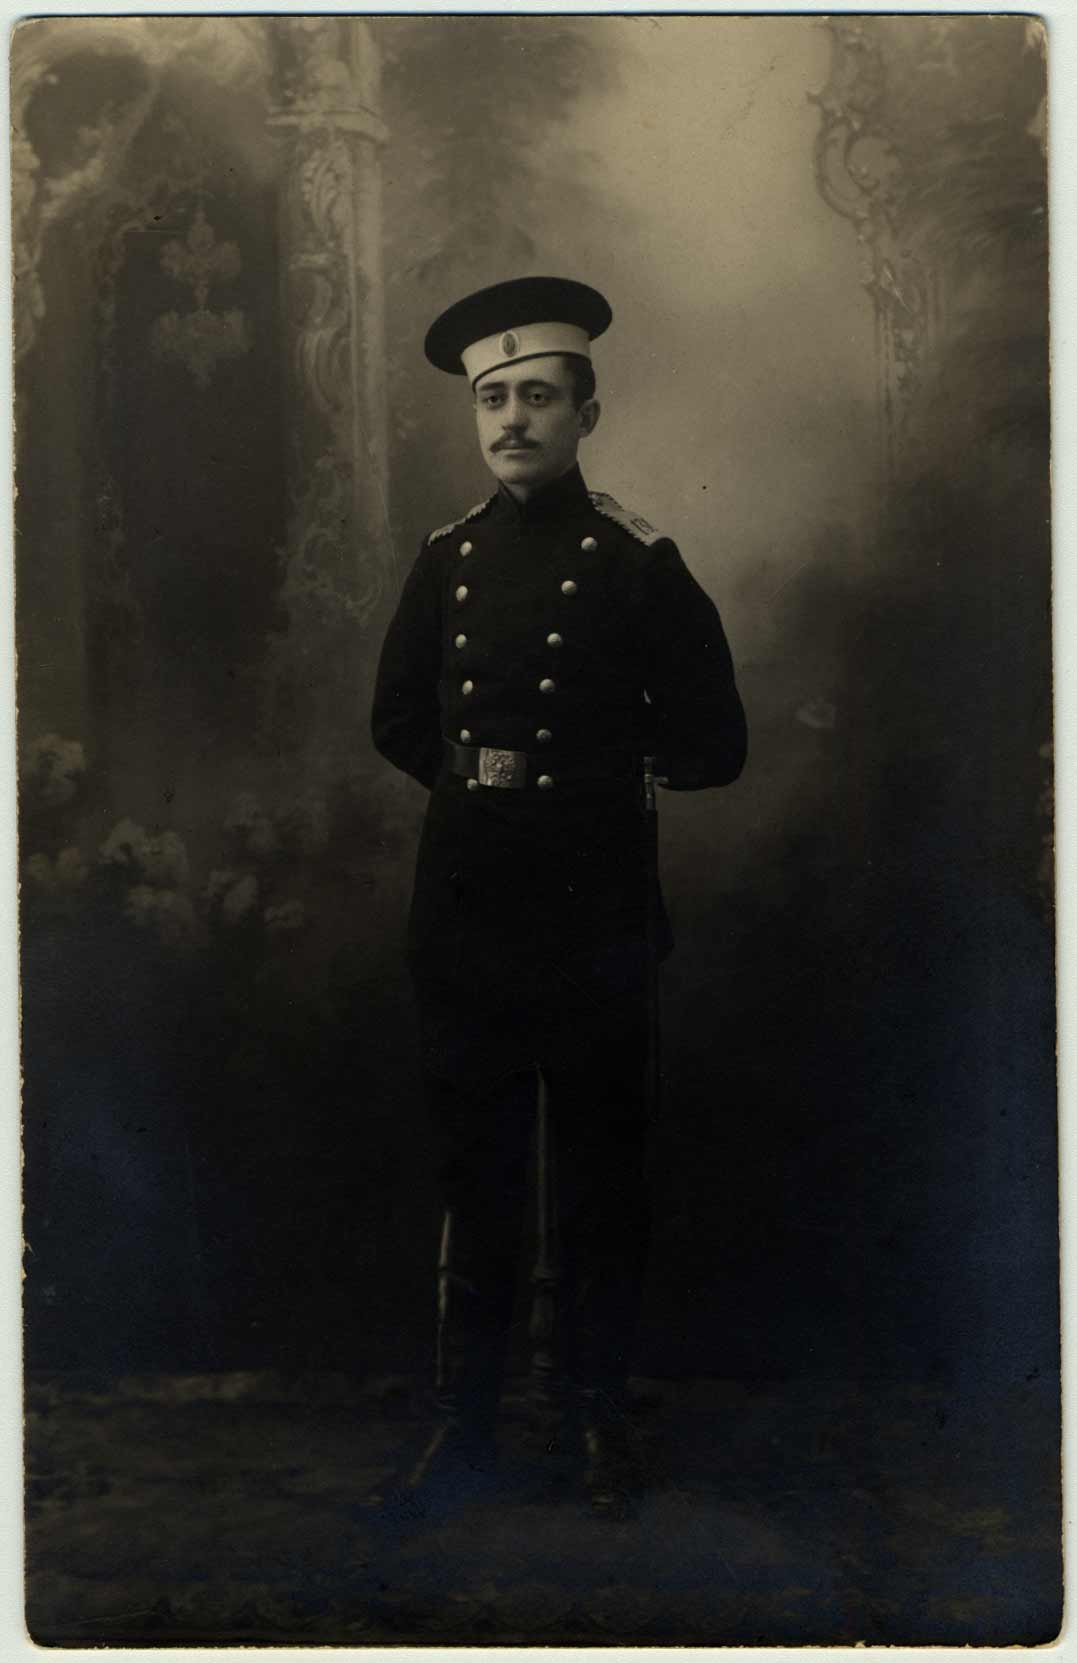 Ginda's husband, Abraham Rosenblatt, in uniform in 1917.